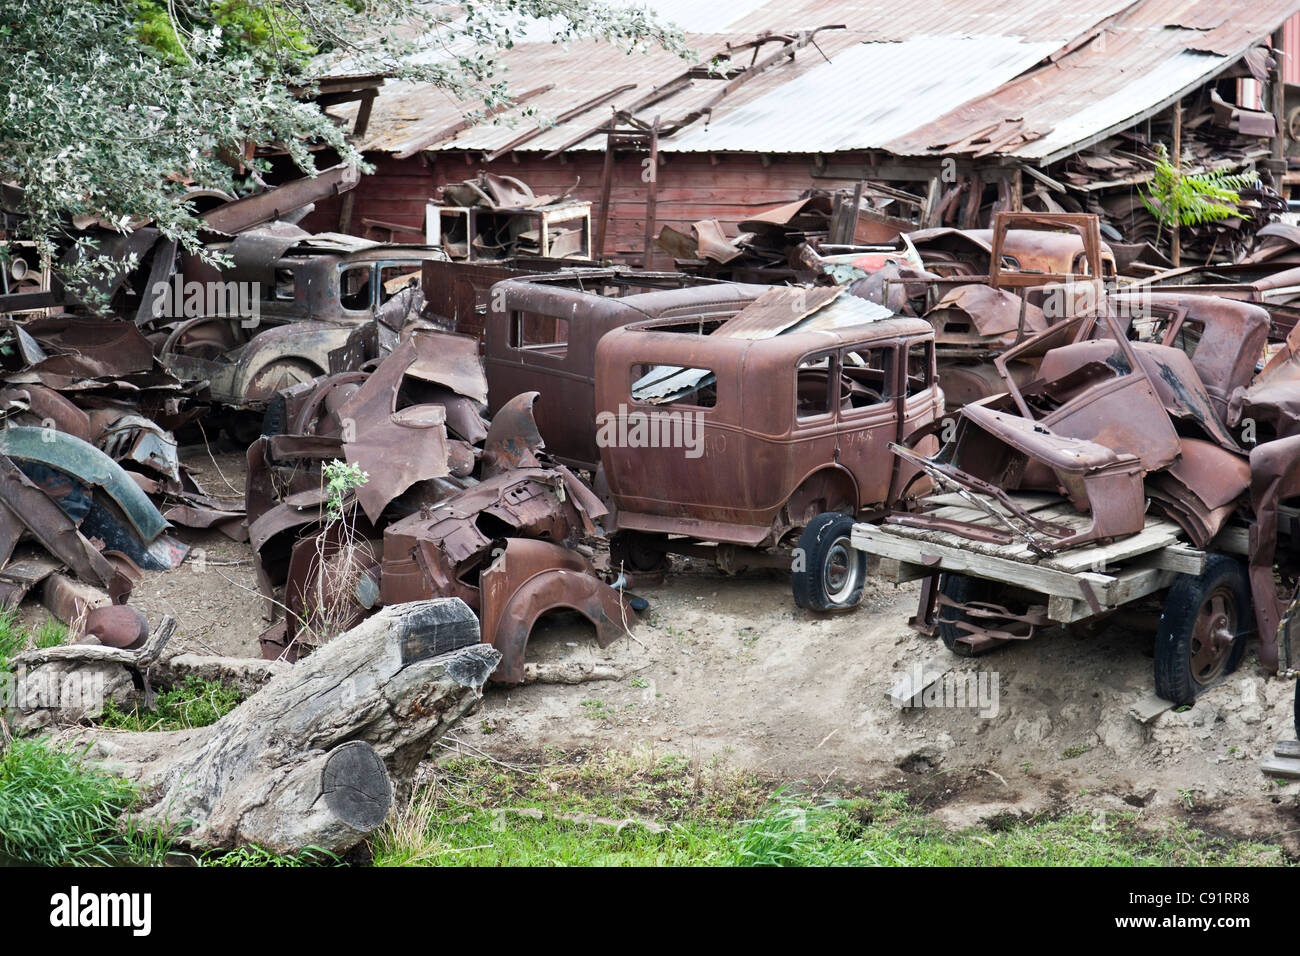 Classic vehicles, graveyard. - Stock Image